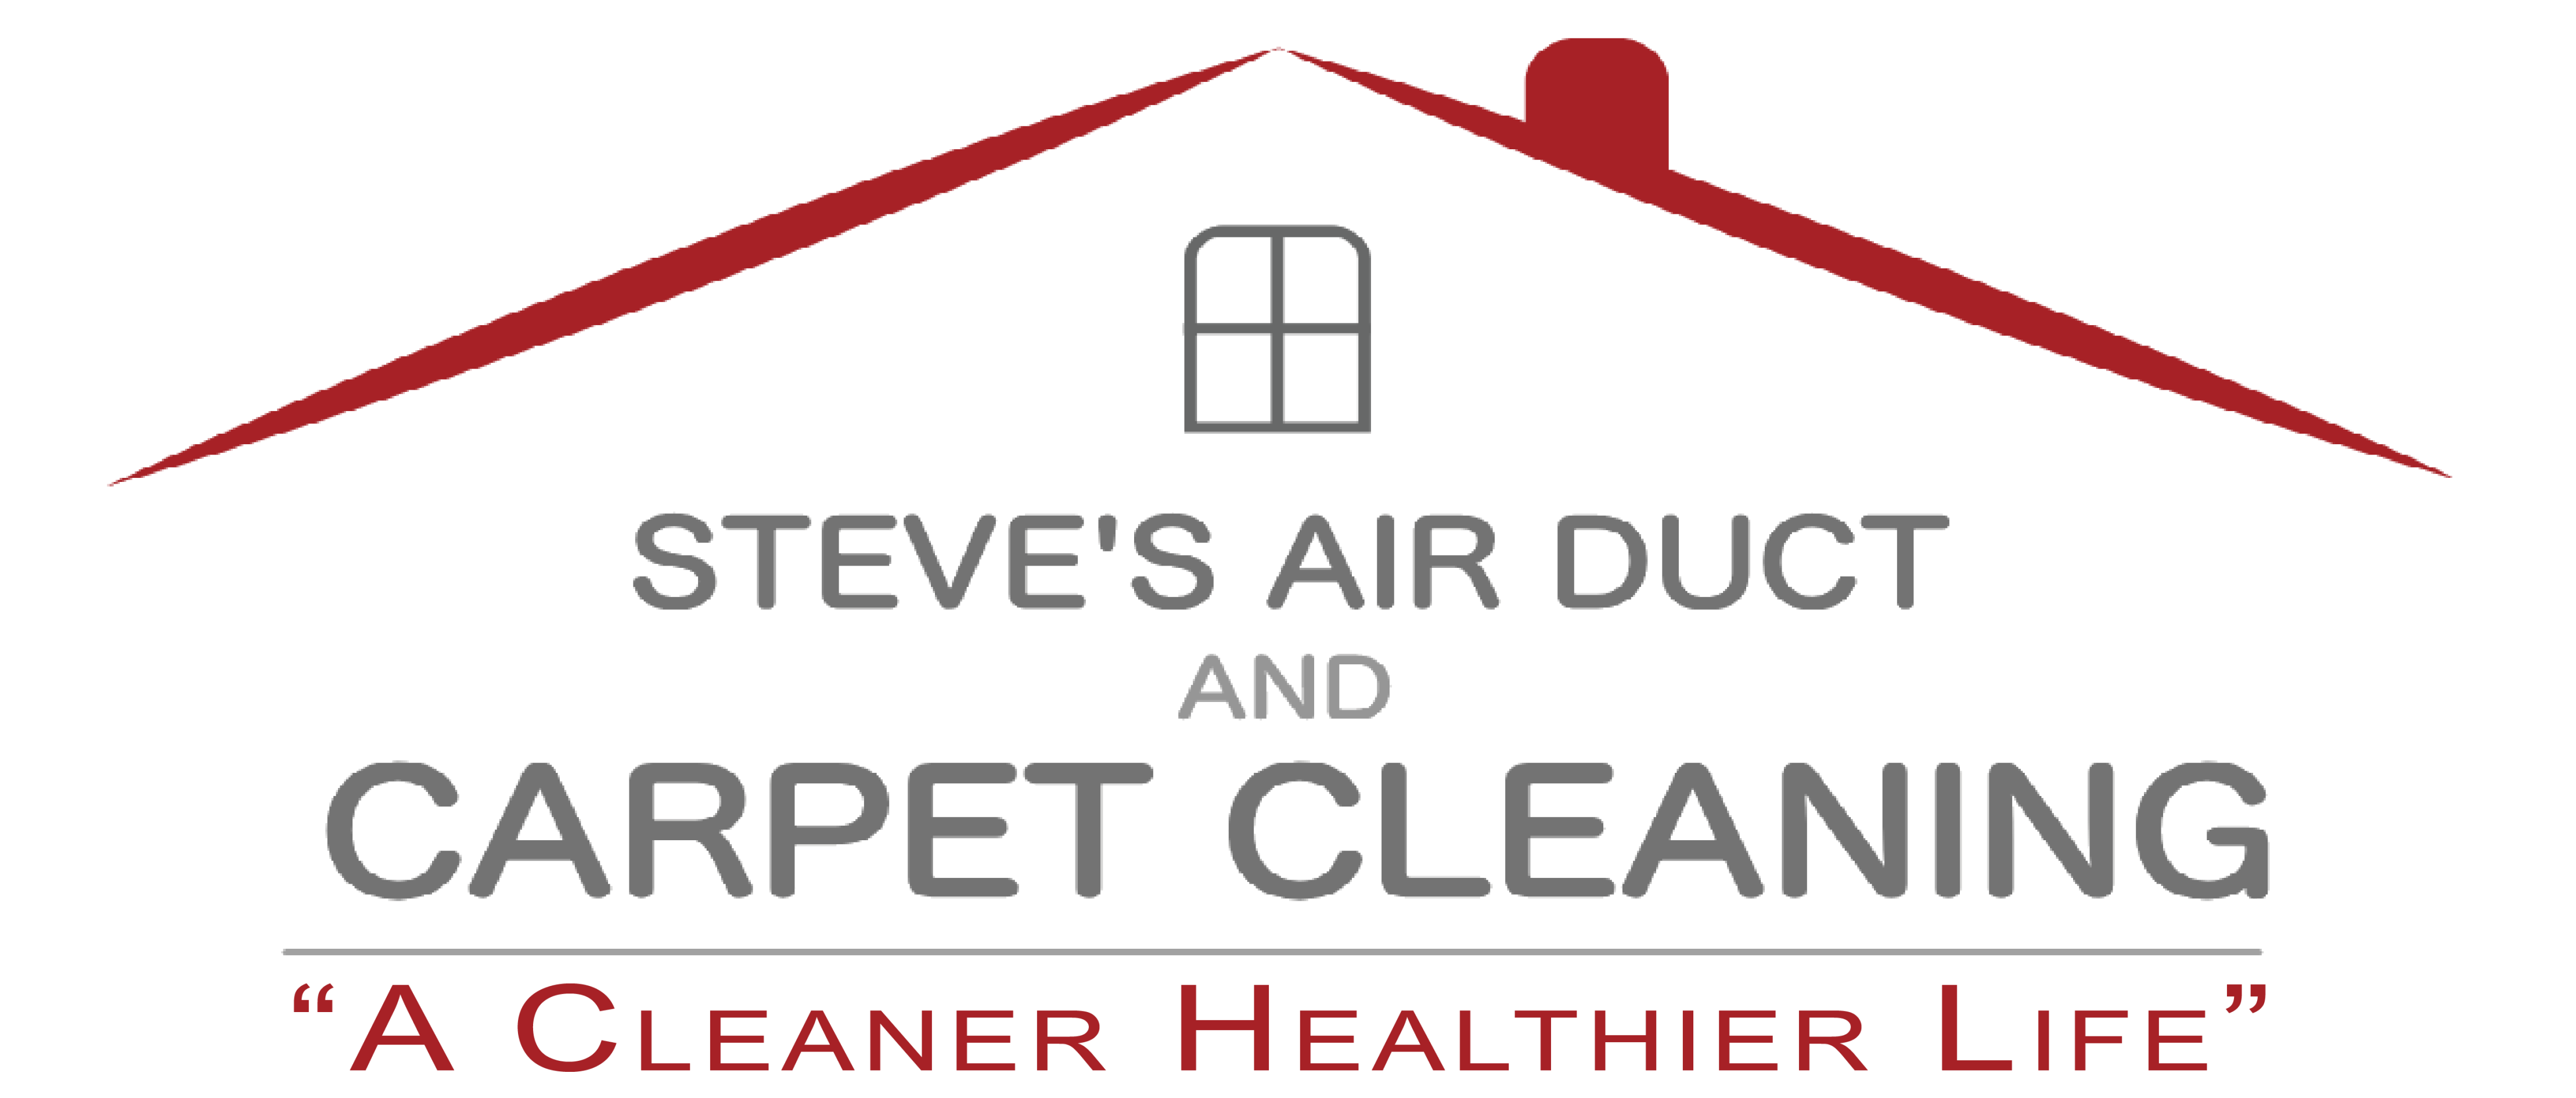 Steves Air Duct and Carpet Cleaning